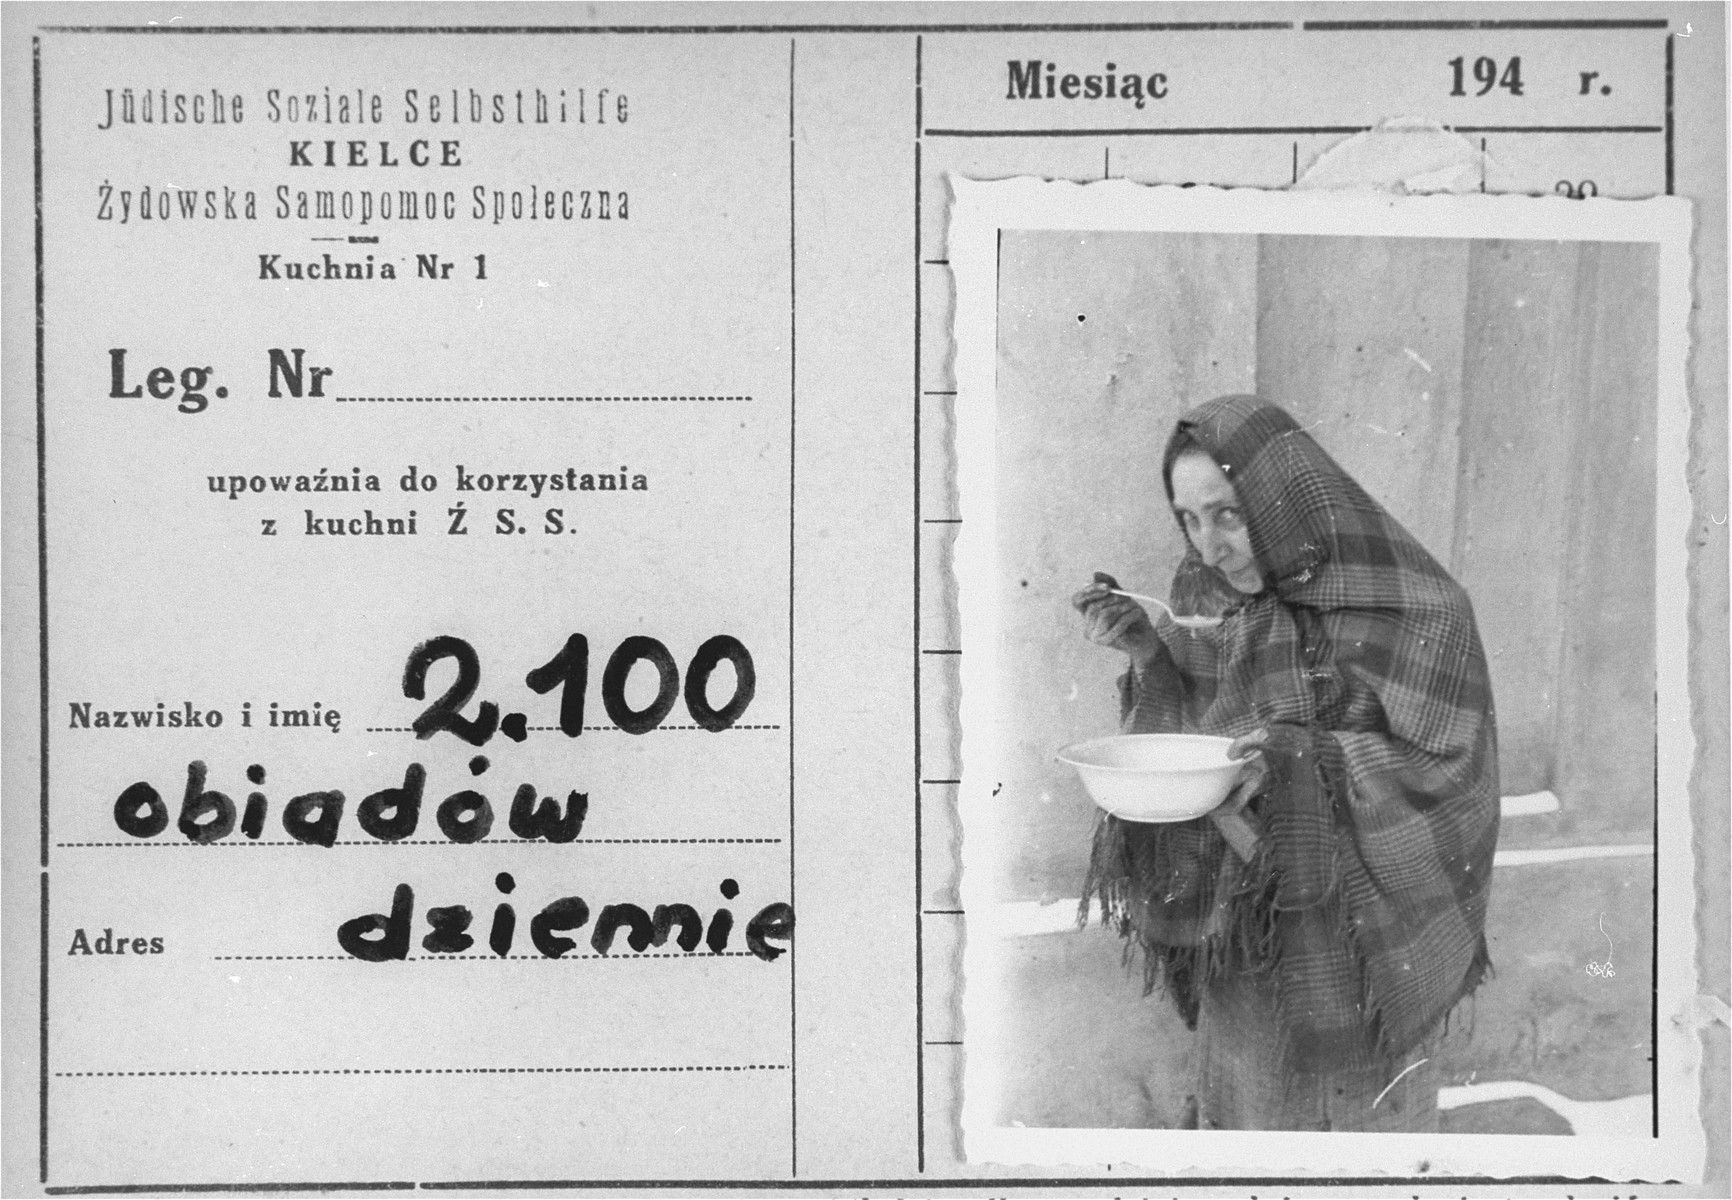 An identification card bearing a photo of a woman eating a bowl of soup in the Kielce ghetto.  An official ID card was required to receive food rations at the soup kitchen organized by the Jewish Social Self-help Committee of the Jewish Council. The inscription in Polish reads: 2,100 dinners served daily.  This photo was one the images included in an official album prepared by the Judenrat of the Kielce ghetto in 1942.